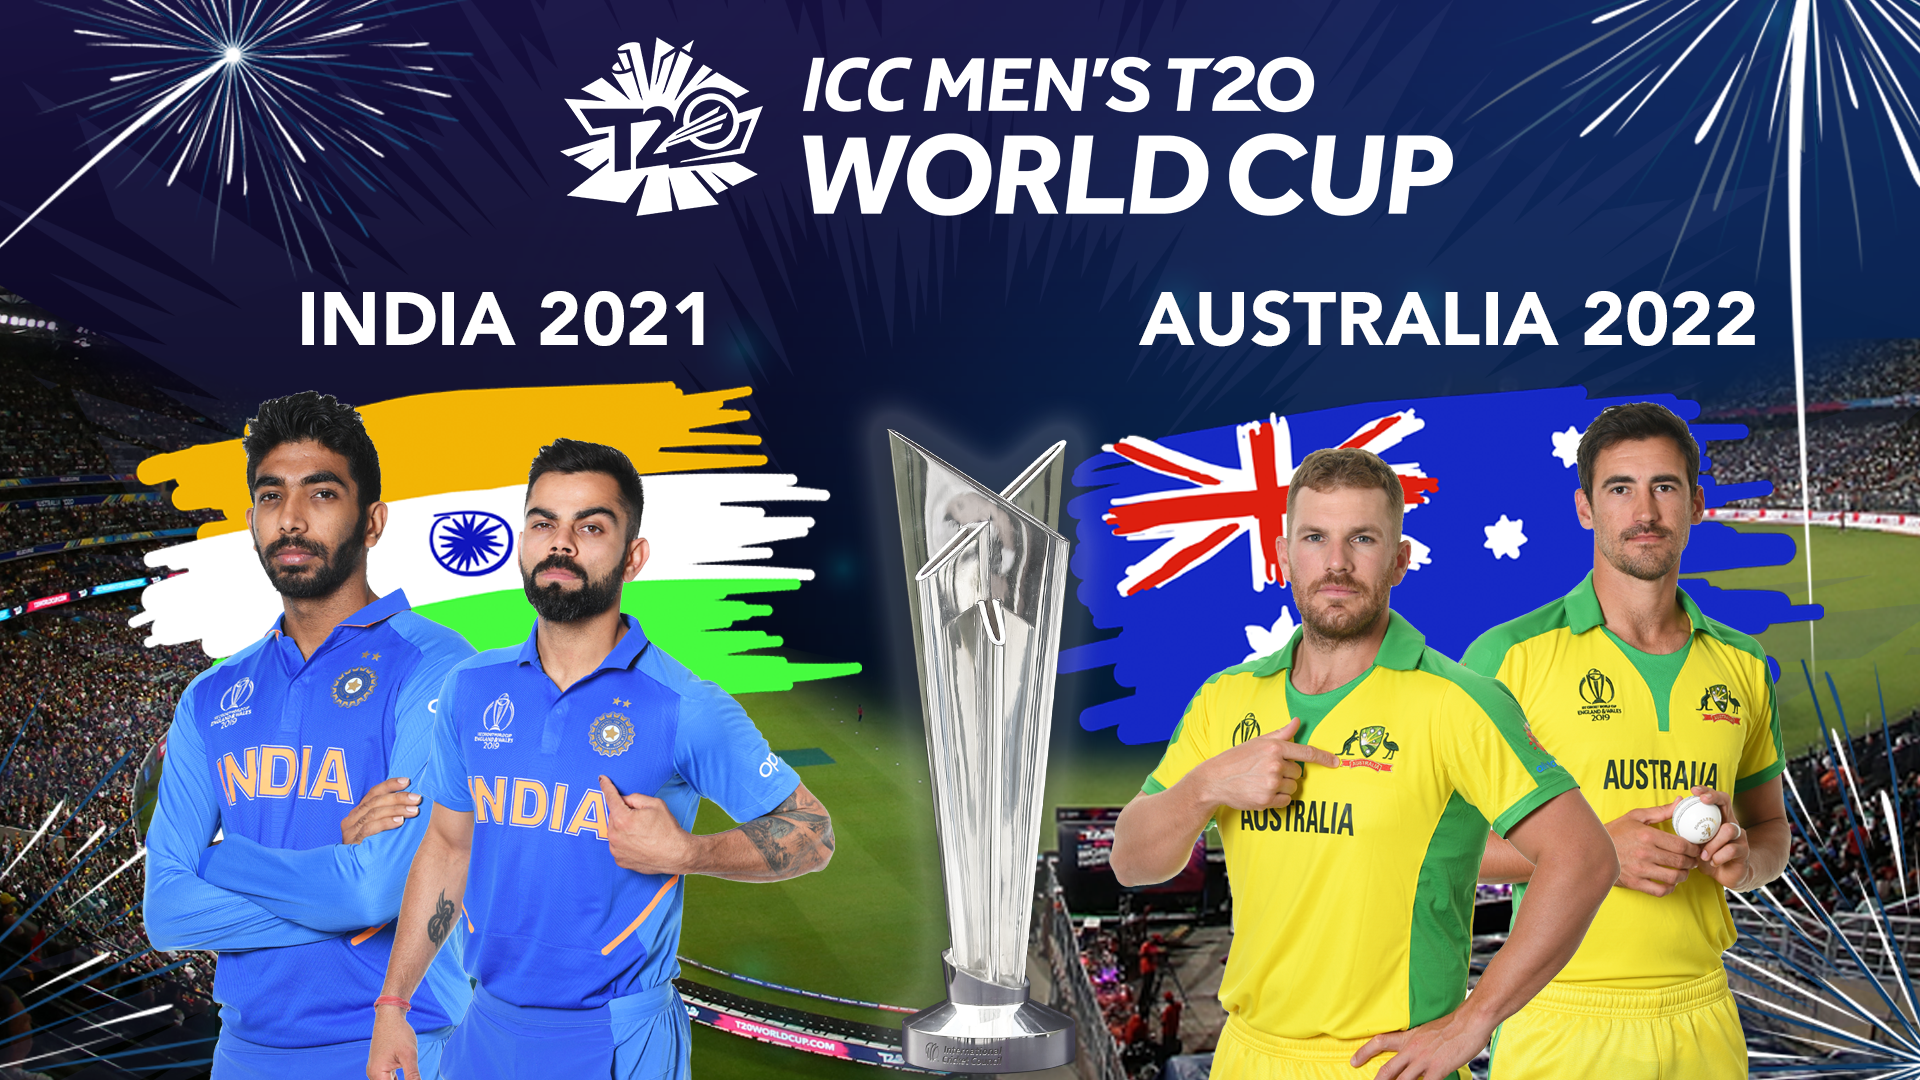 2021 World Cup Calendar Men's T20WC 2021 in India, 2022 in Australia; Women's CWC postponed